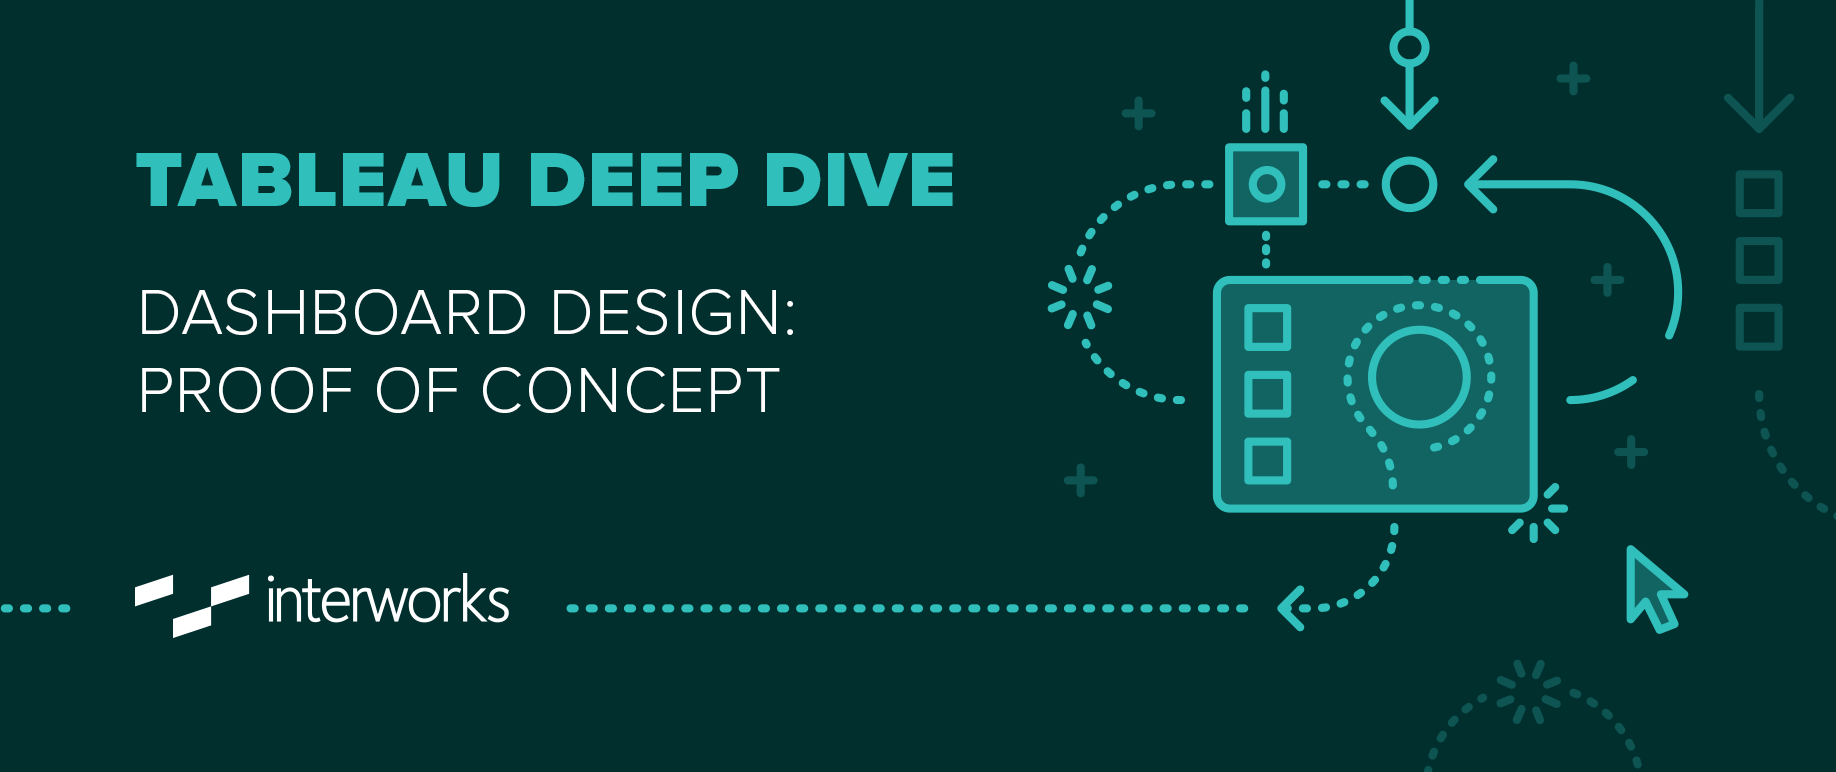 Tableau Deep Dive Dashboard Design